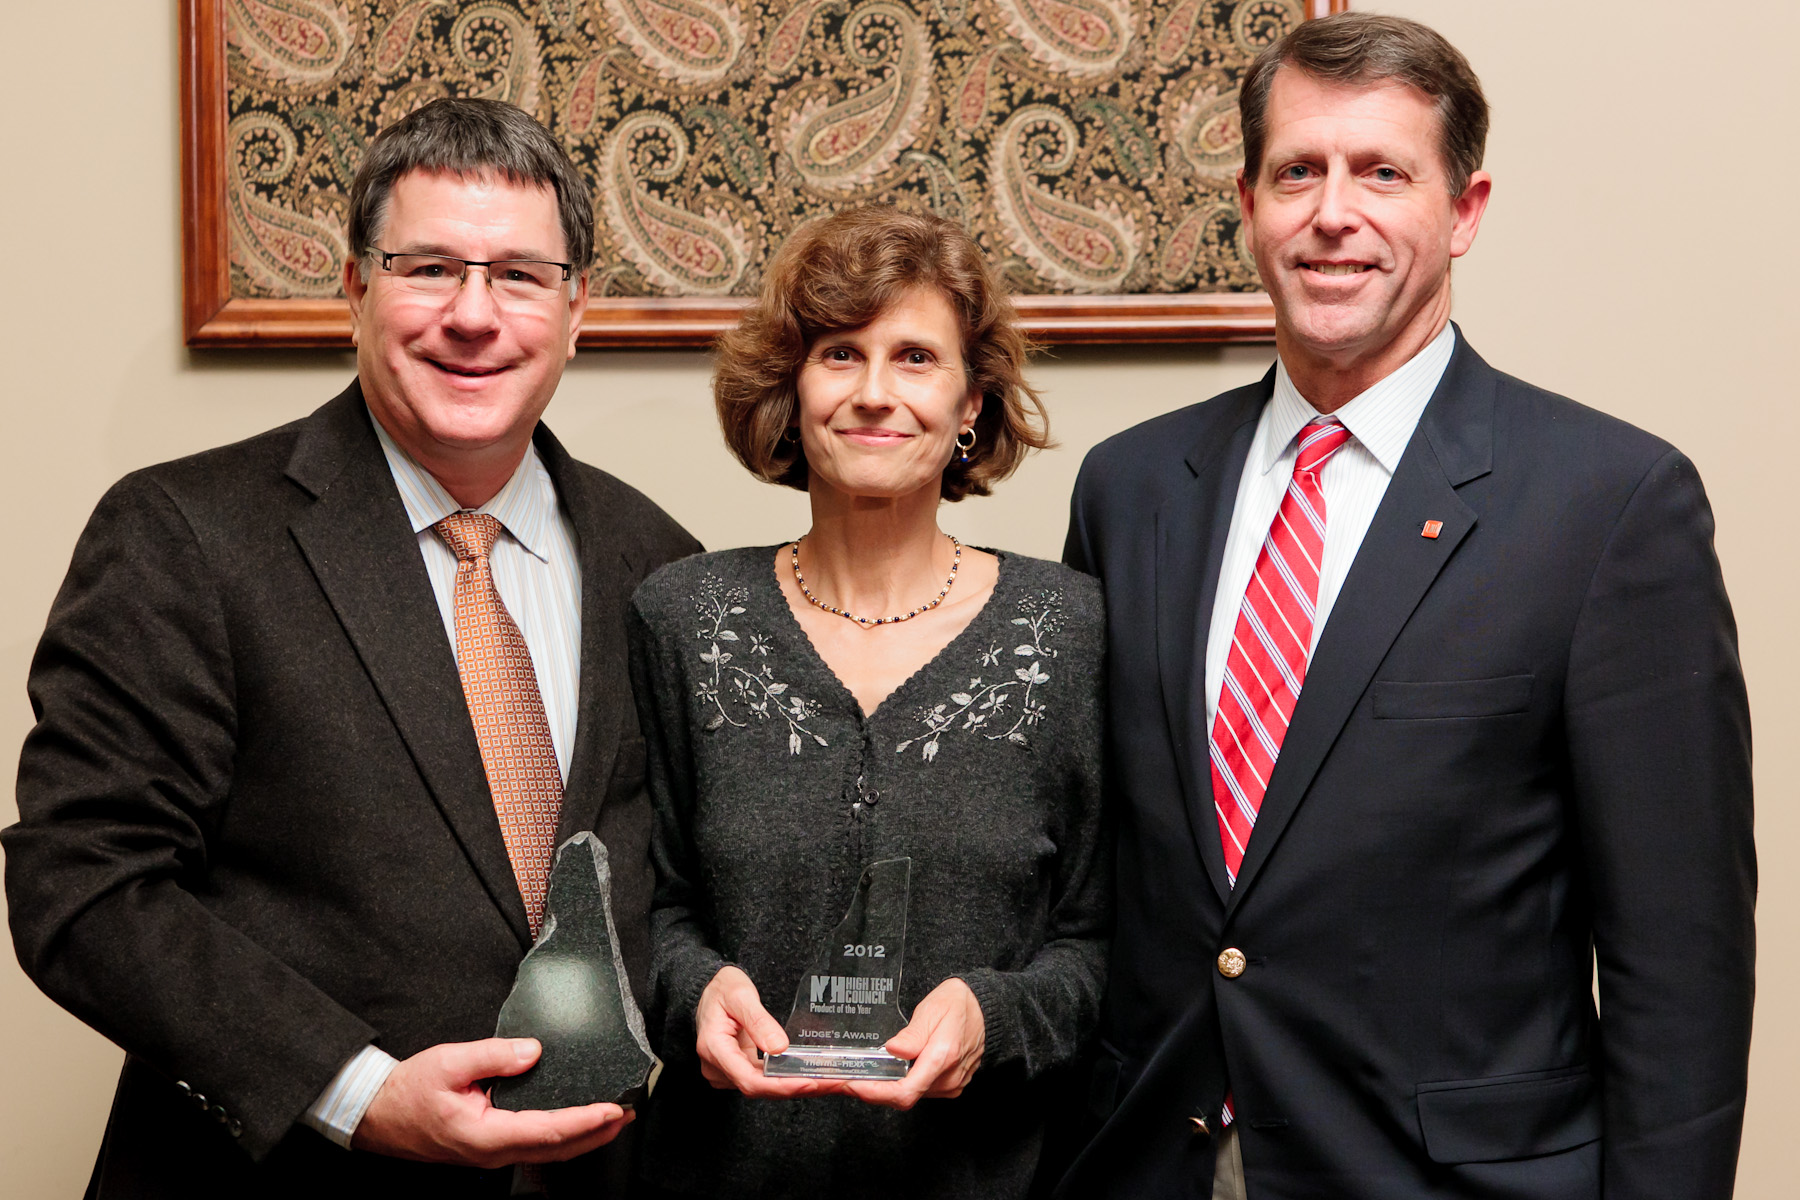 Portsmouth-based Therma-HEXX received the 2012 New Hampshire High Tech Council Product of the Year award Wednesday, Nov. 14. From left to right Robert Barmore, Susan Barmore, and John Gilbert.Photo credit: Matthew Lomanno Photography